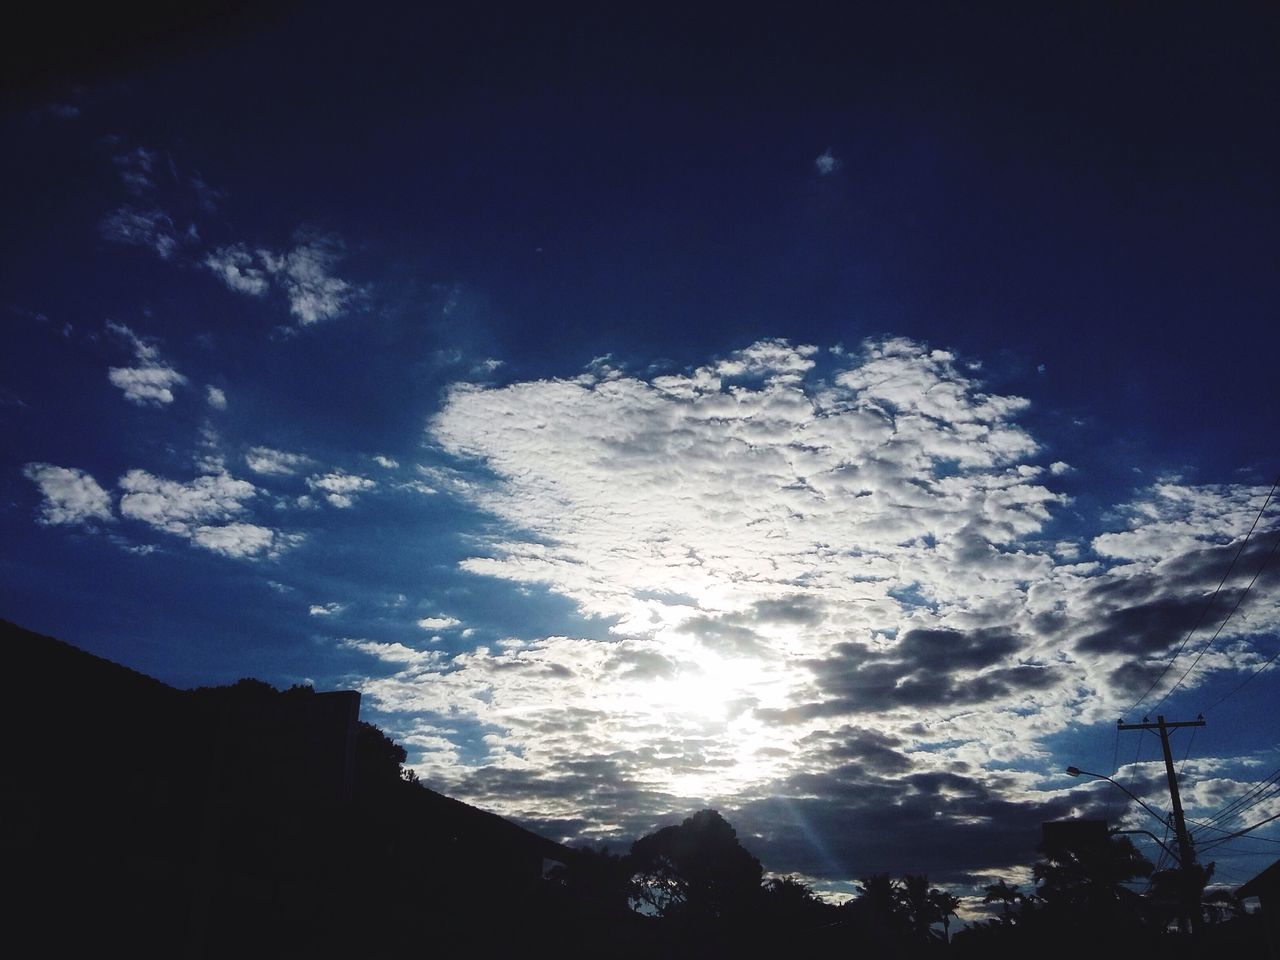 low angle view, sky, nature, beauty in nature, silhouette, no people, outdoors, tranquility, day, scenics, tree, astronomy